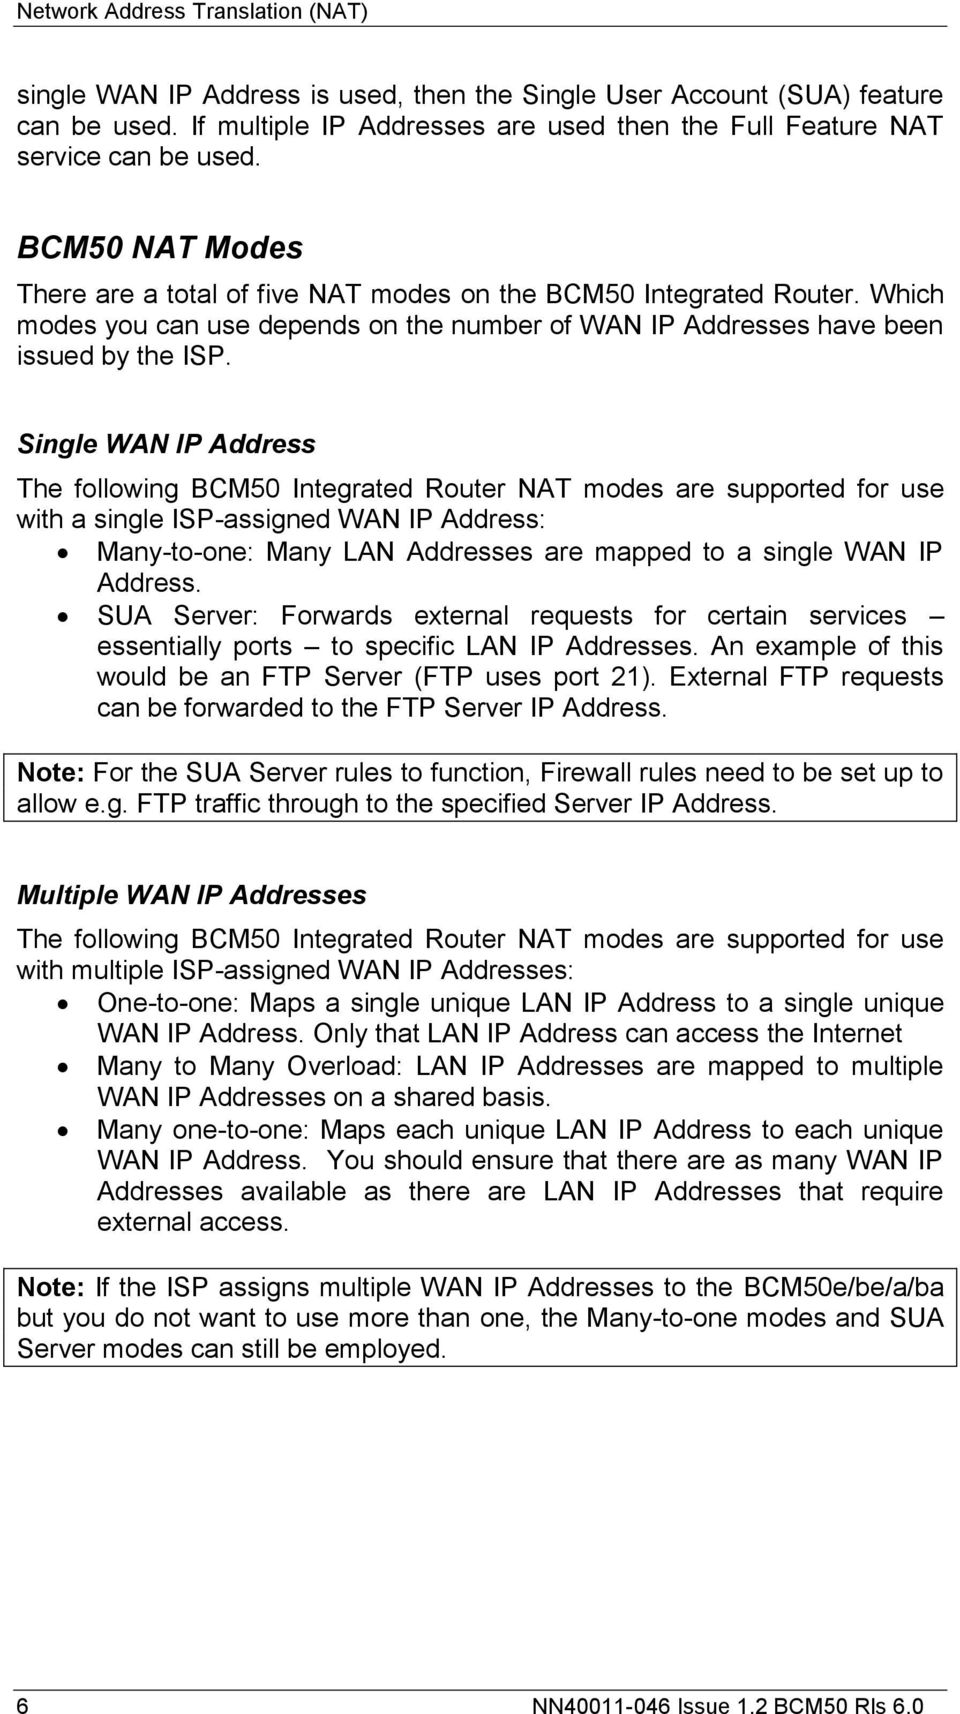 Single WAN IP Address The following BCM50 Integrated Router NAT modes are supported for use with a single ISP-assigned WAN IP Address: Many-to-one: Many LAN Addresses are mapped to a single WAN IP